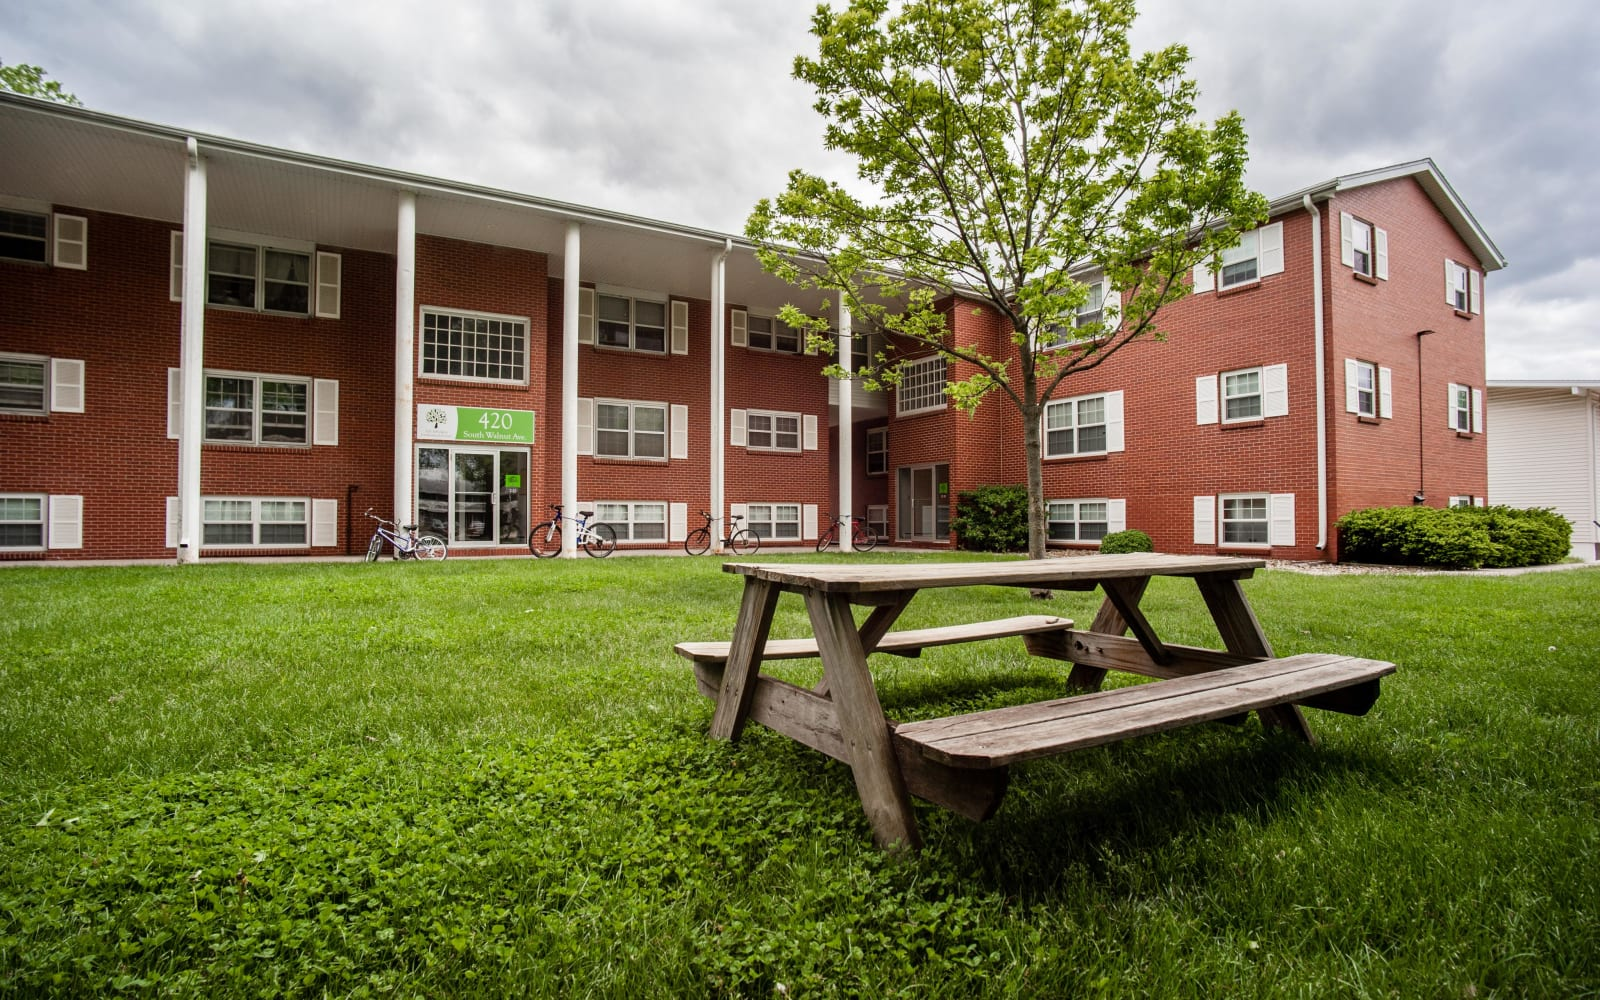 Apartment building with lush, green grass at South Meadow in Ames, Iowa.